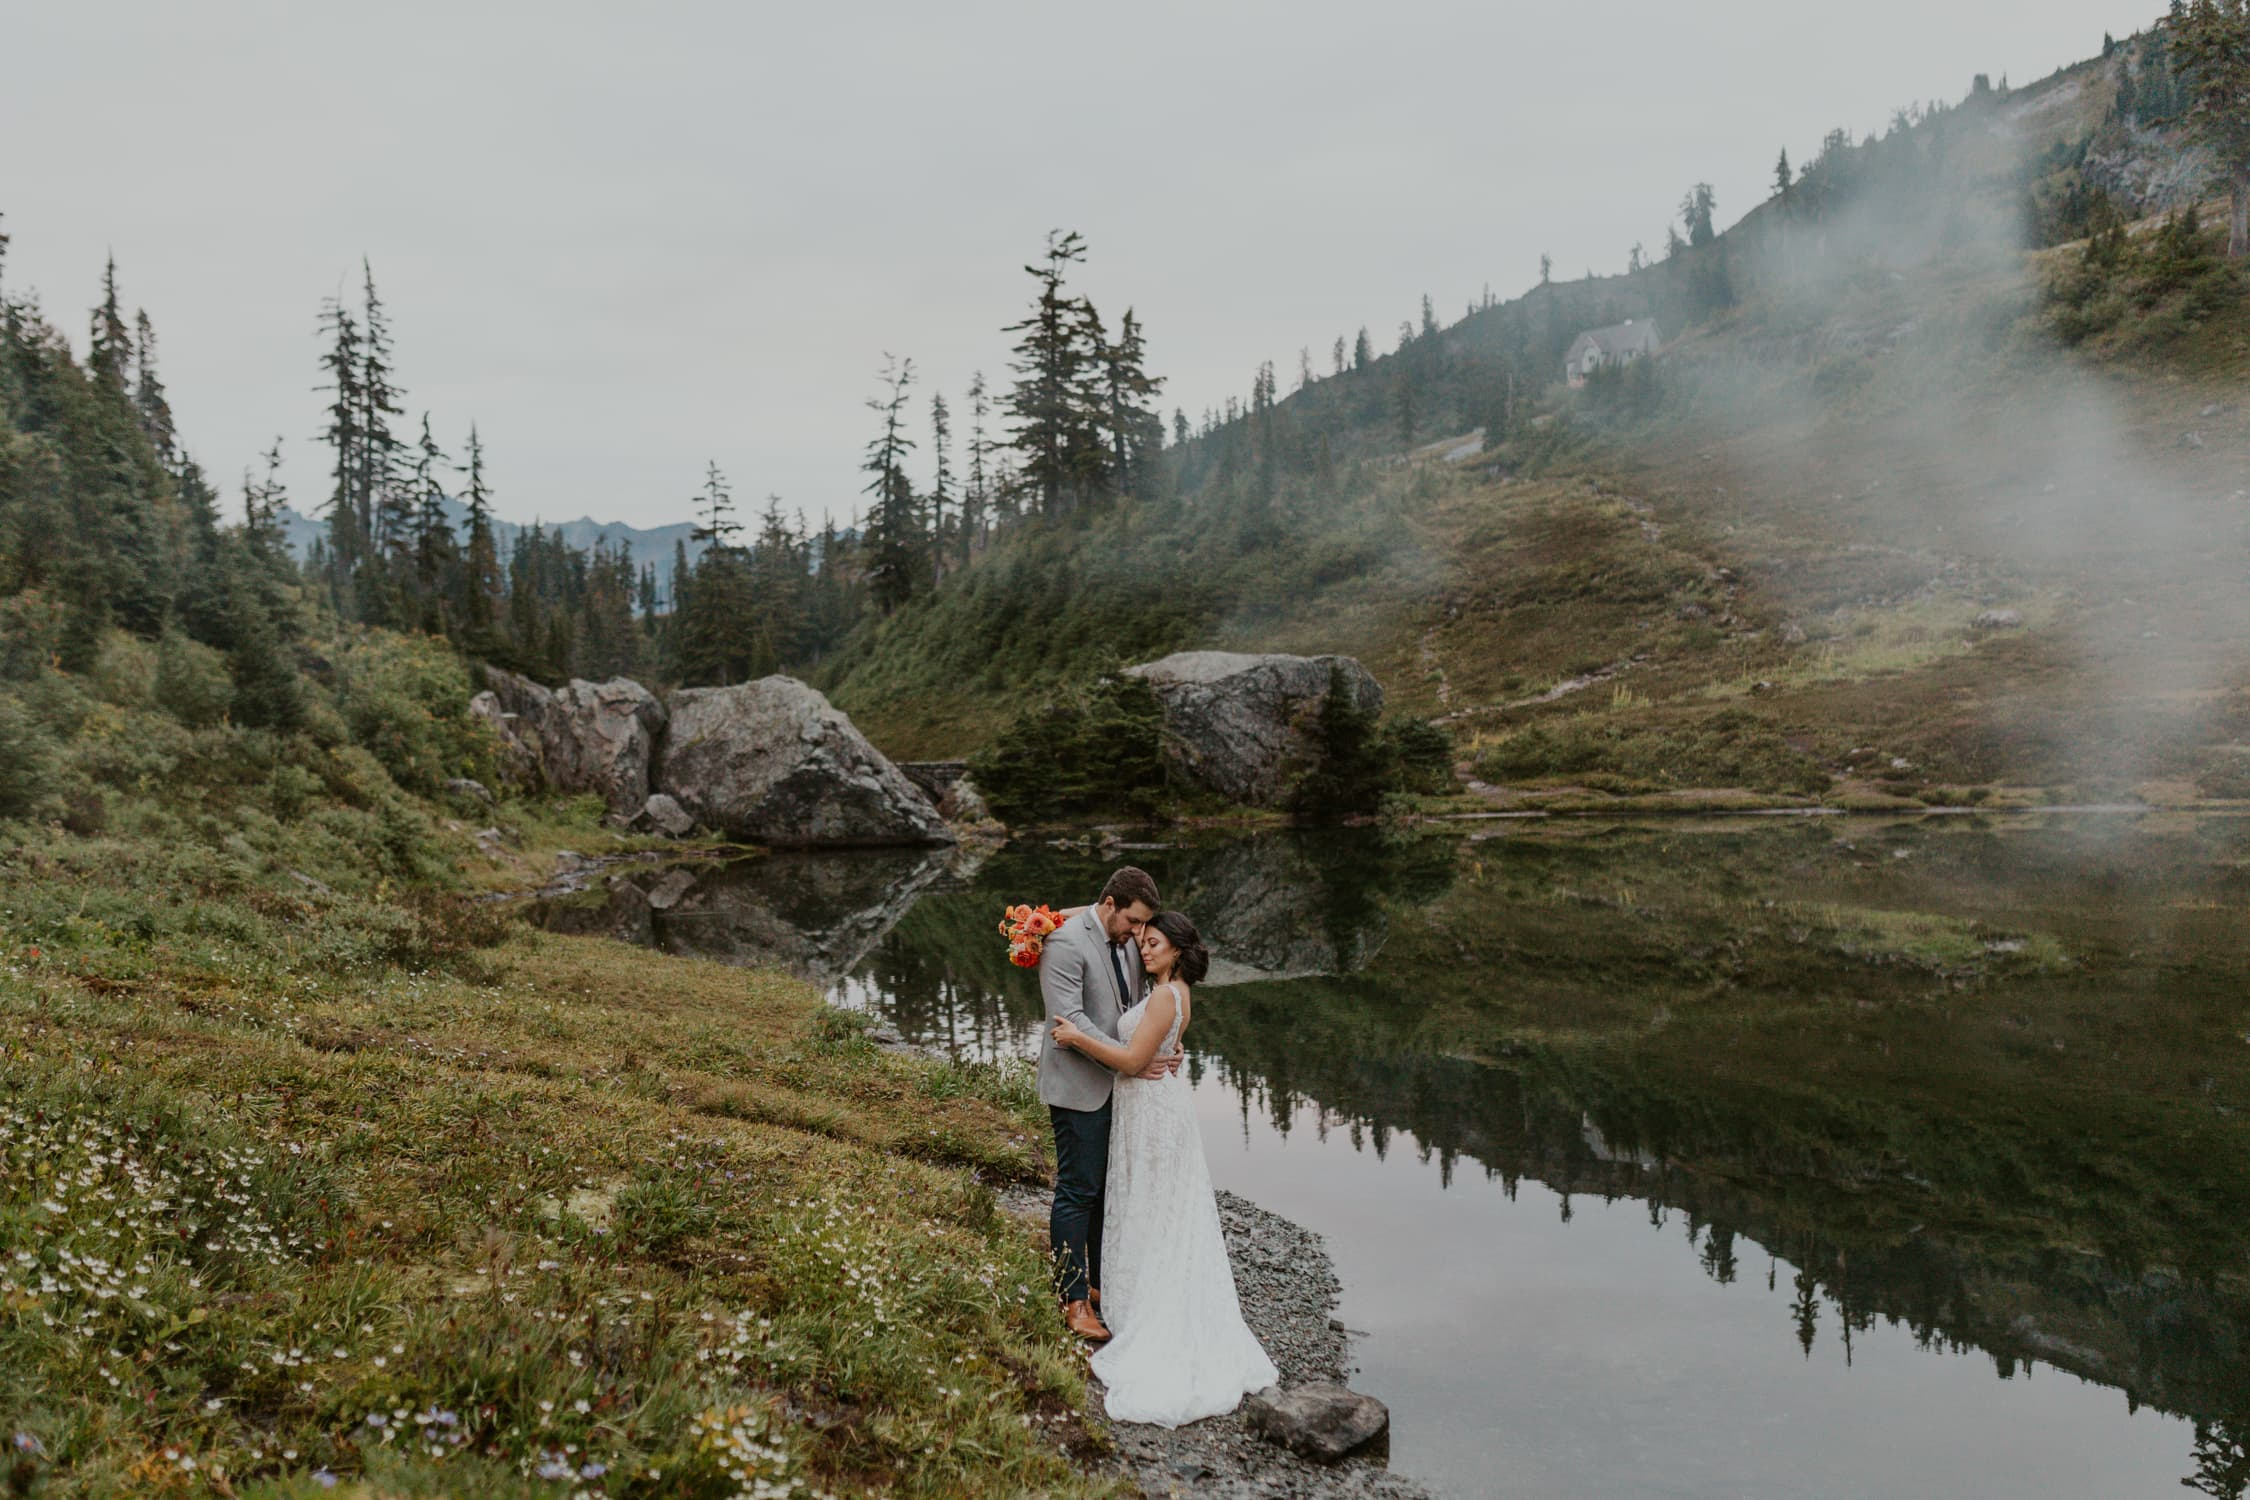 A couple hugging each other in front of a lake in North Cascades.